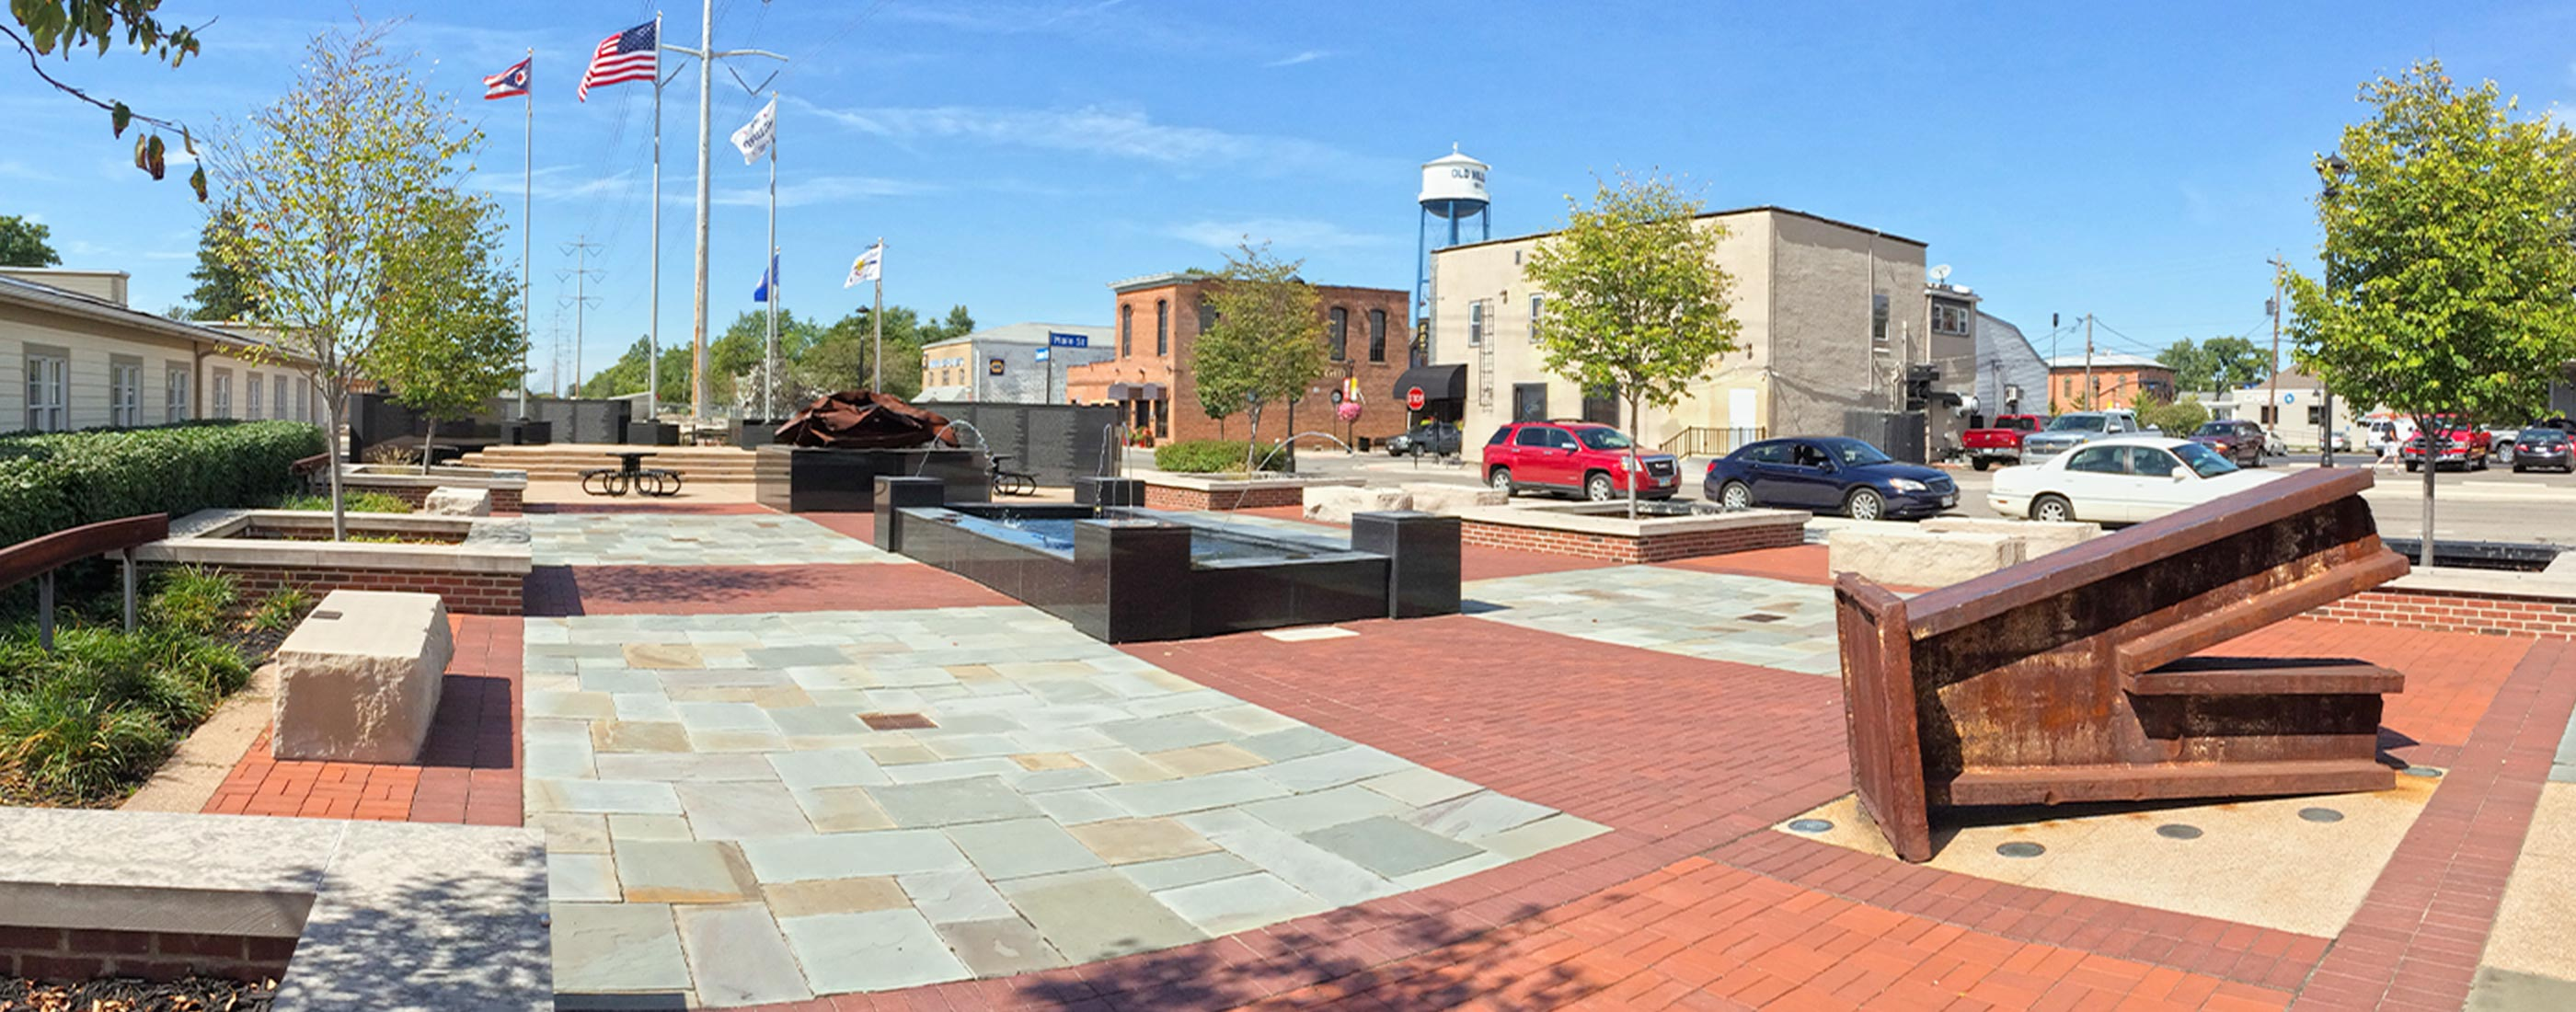 Hilliard First Responders Park is made up of a series of contemplative spaces, and incorporates fountain features, seating areas, sculptures, and memorial monuments.